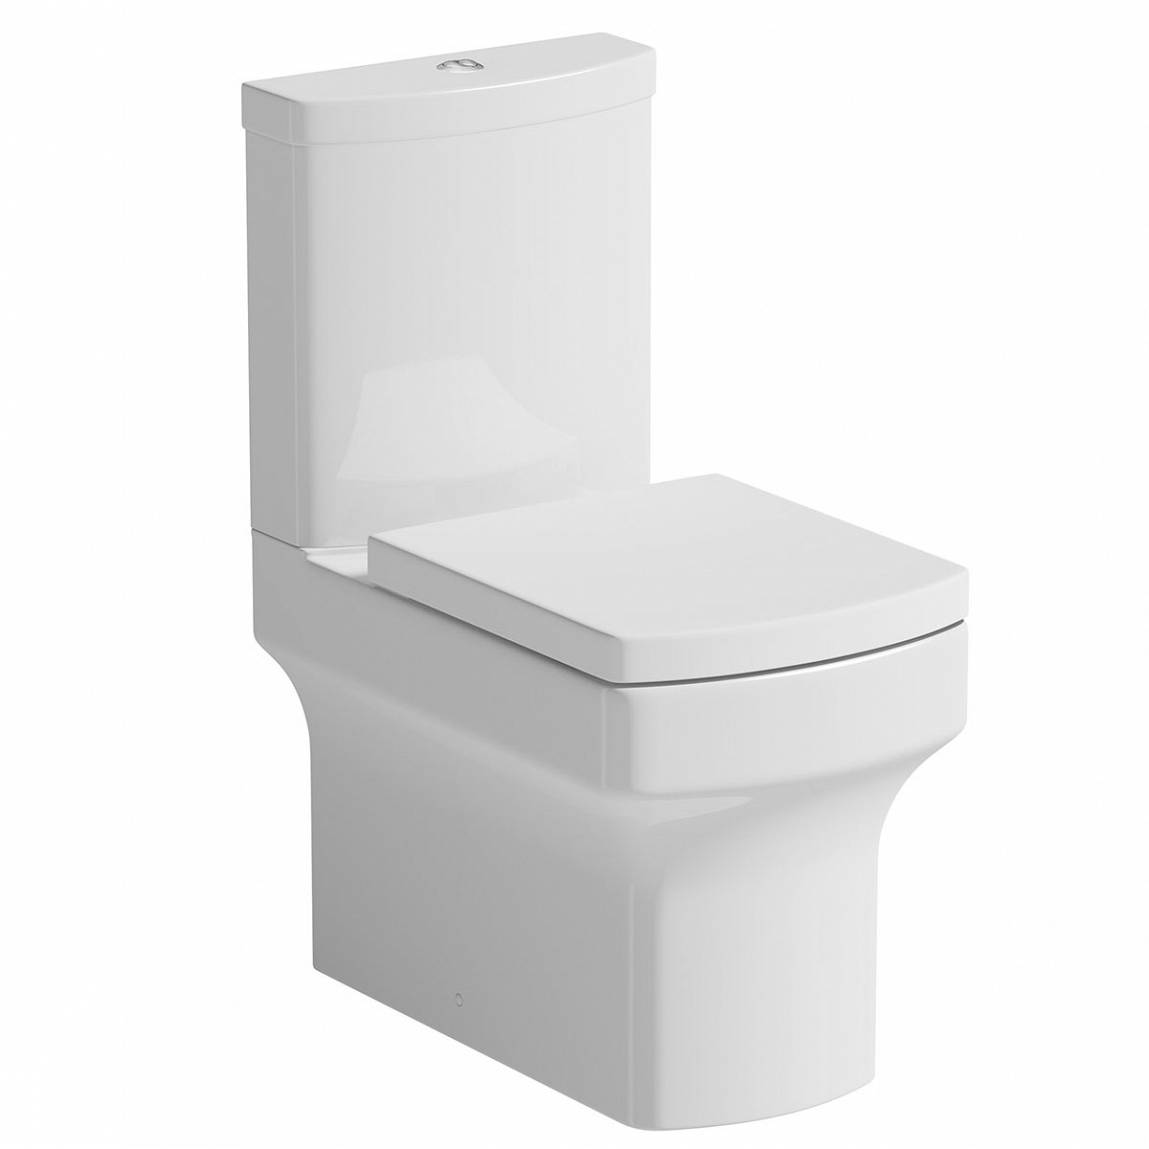 Image of Vermont Close Coupled Toilet inc Soft Close Seat